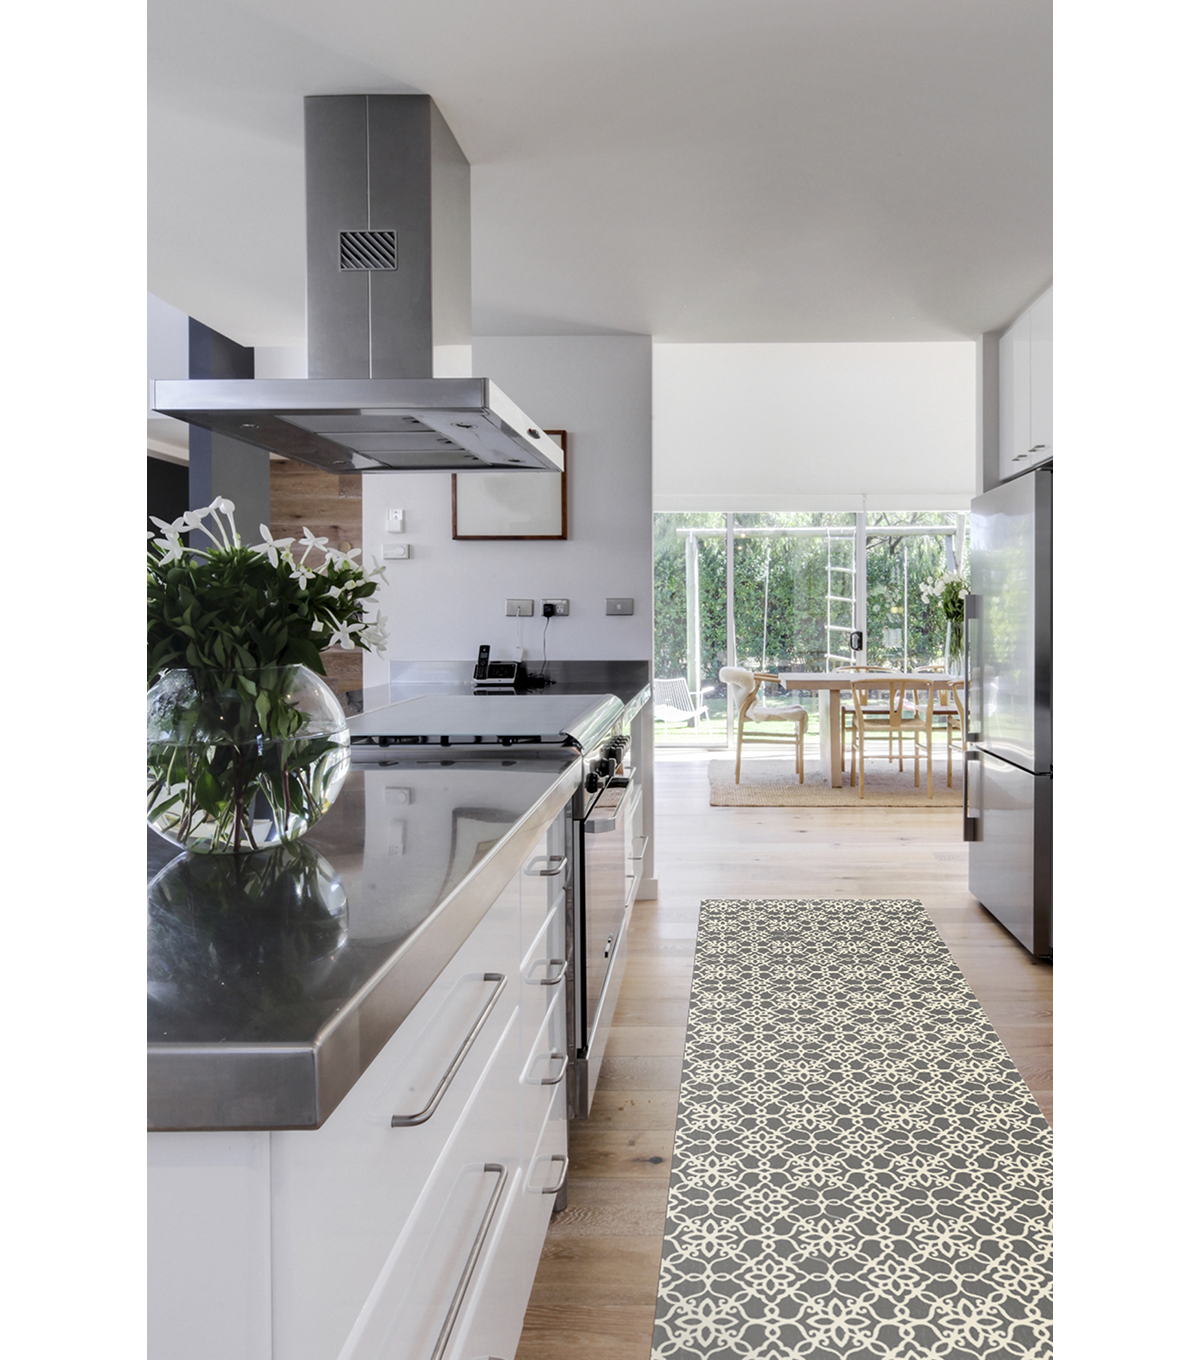 Ruggable 2pc Washable Rug System-Floral Tiles Rich Grey  & White